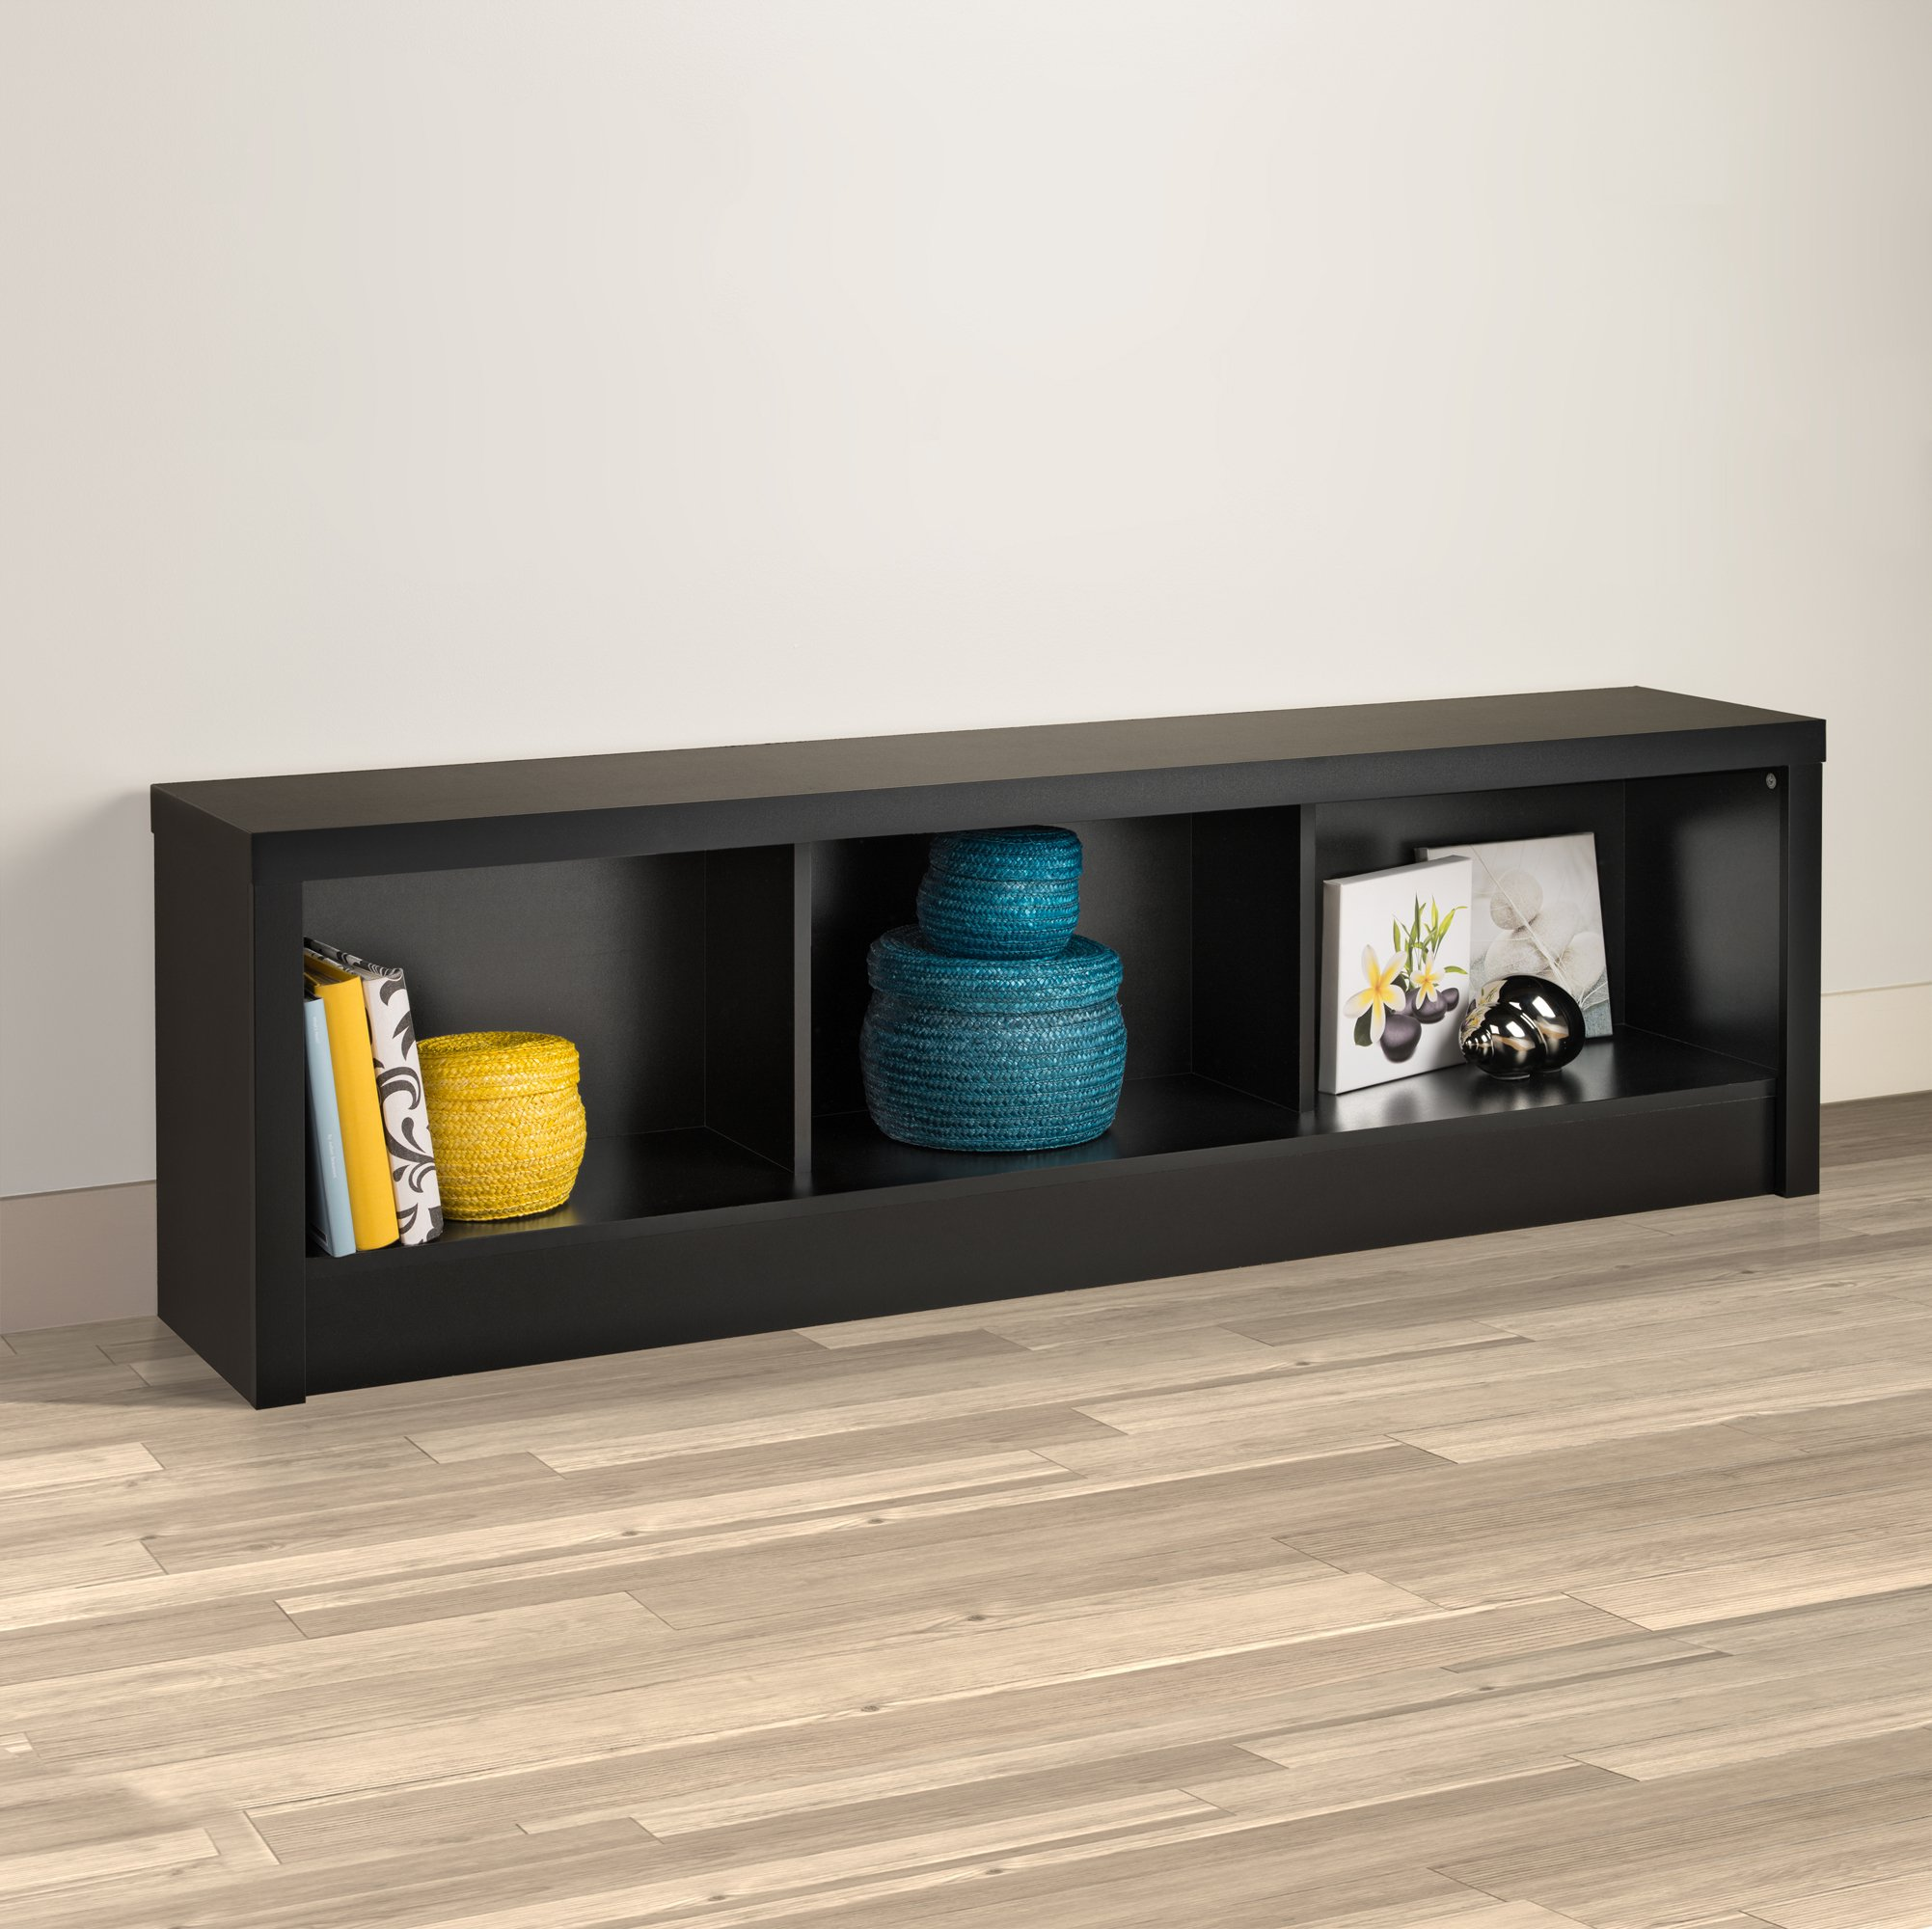 Series 9 Designer - Black Storage Bench